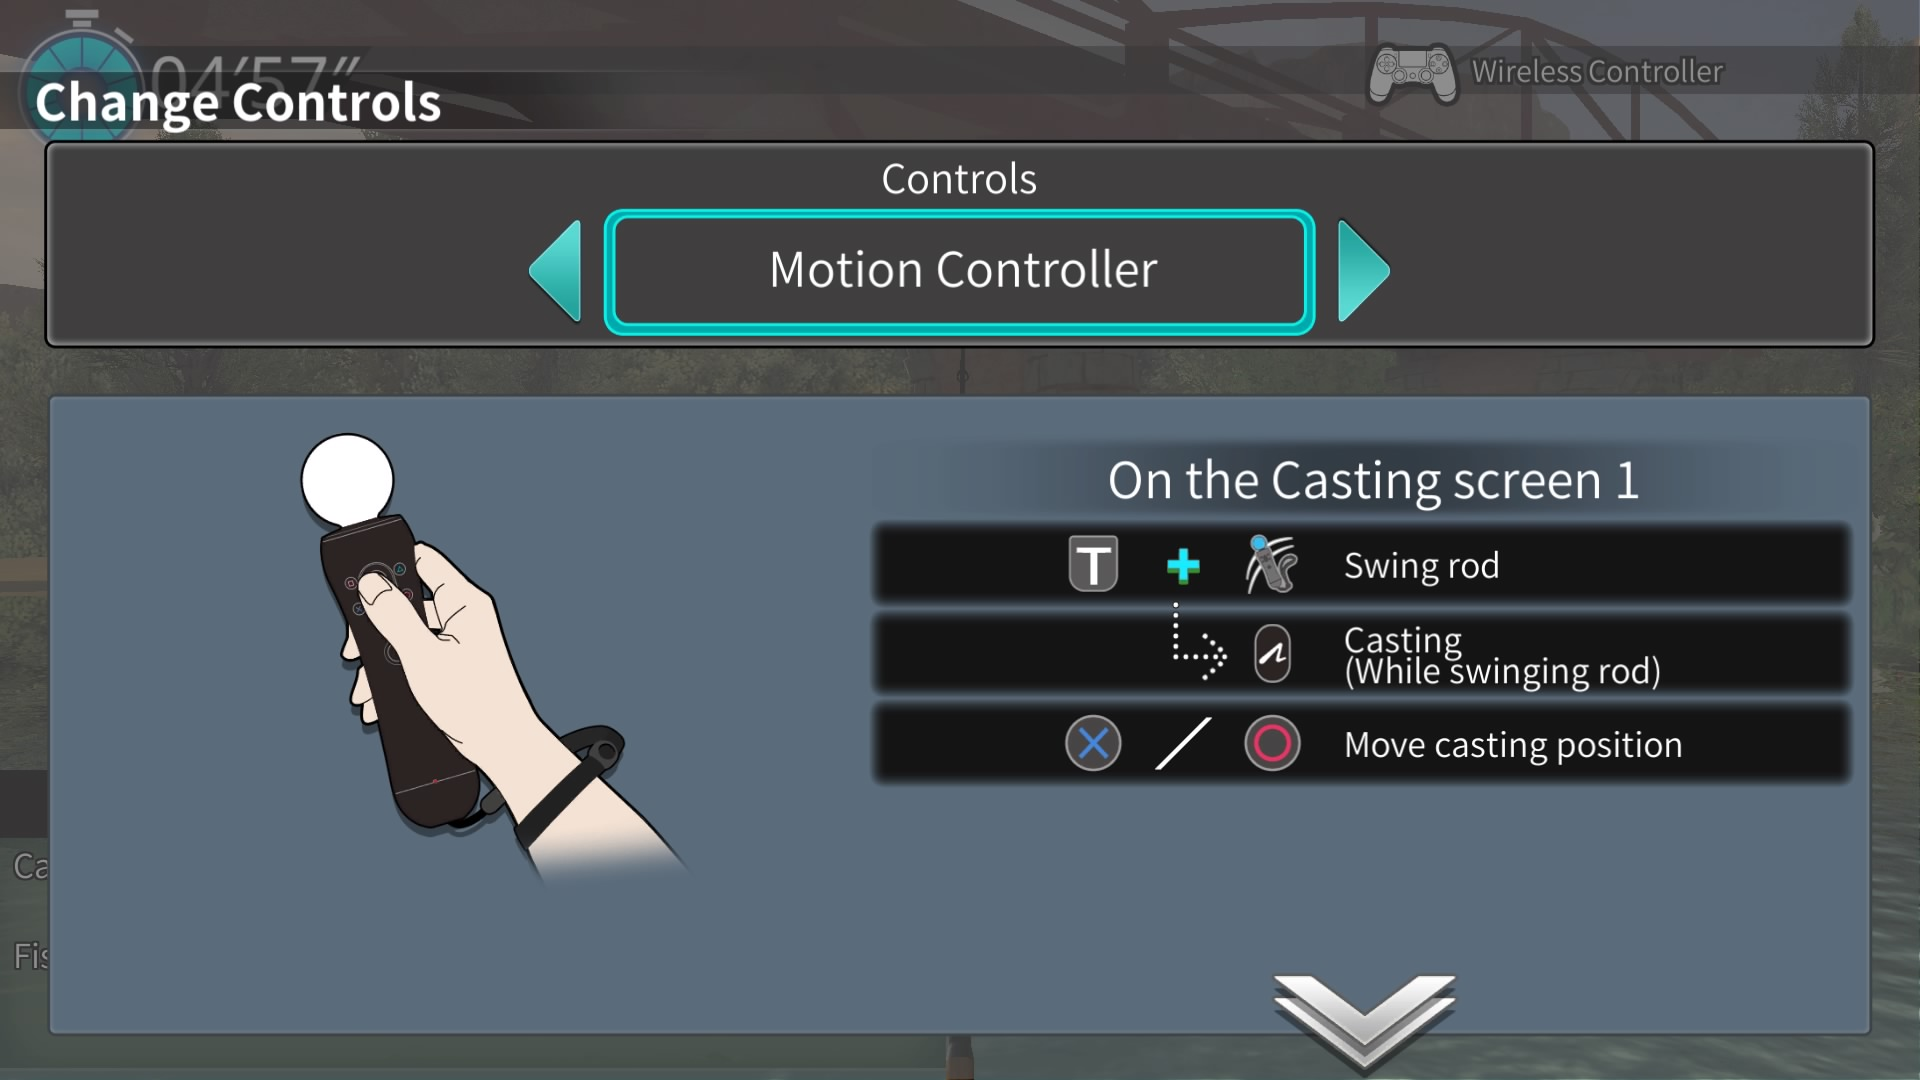 Image of menu showing where motion controls can be activated